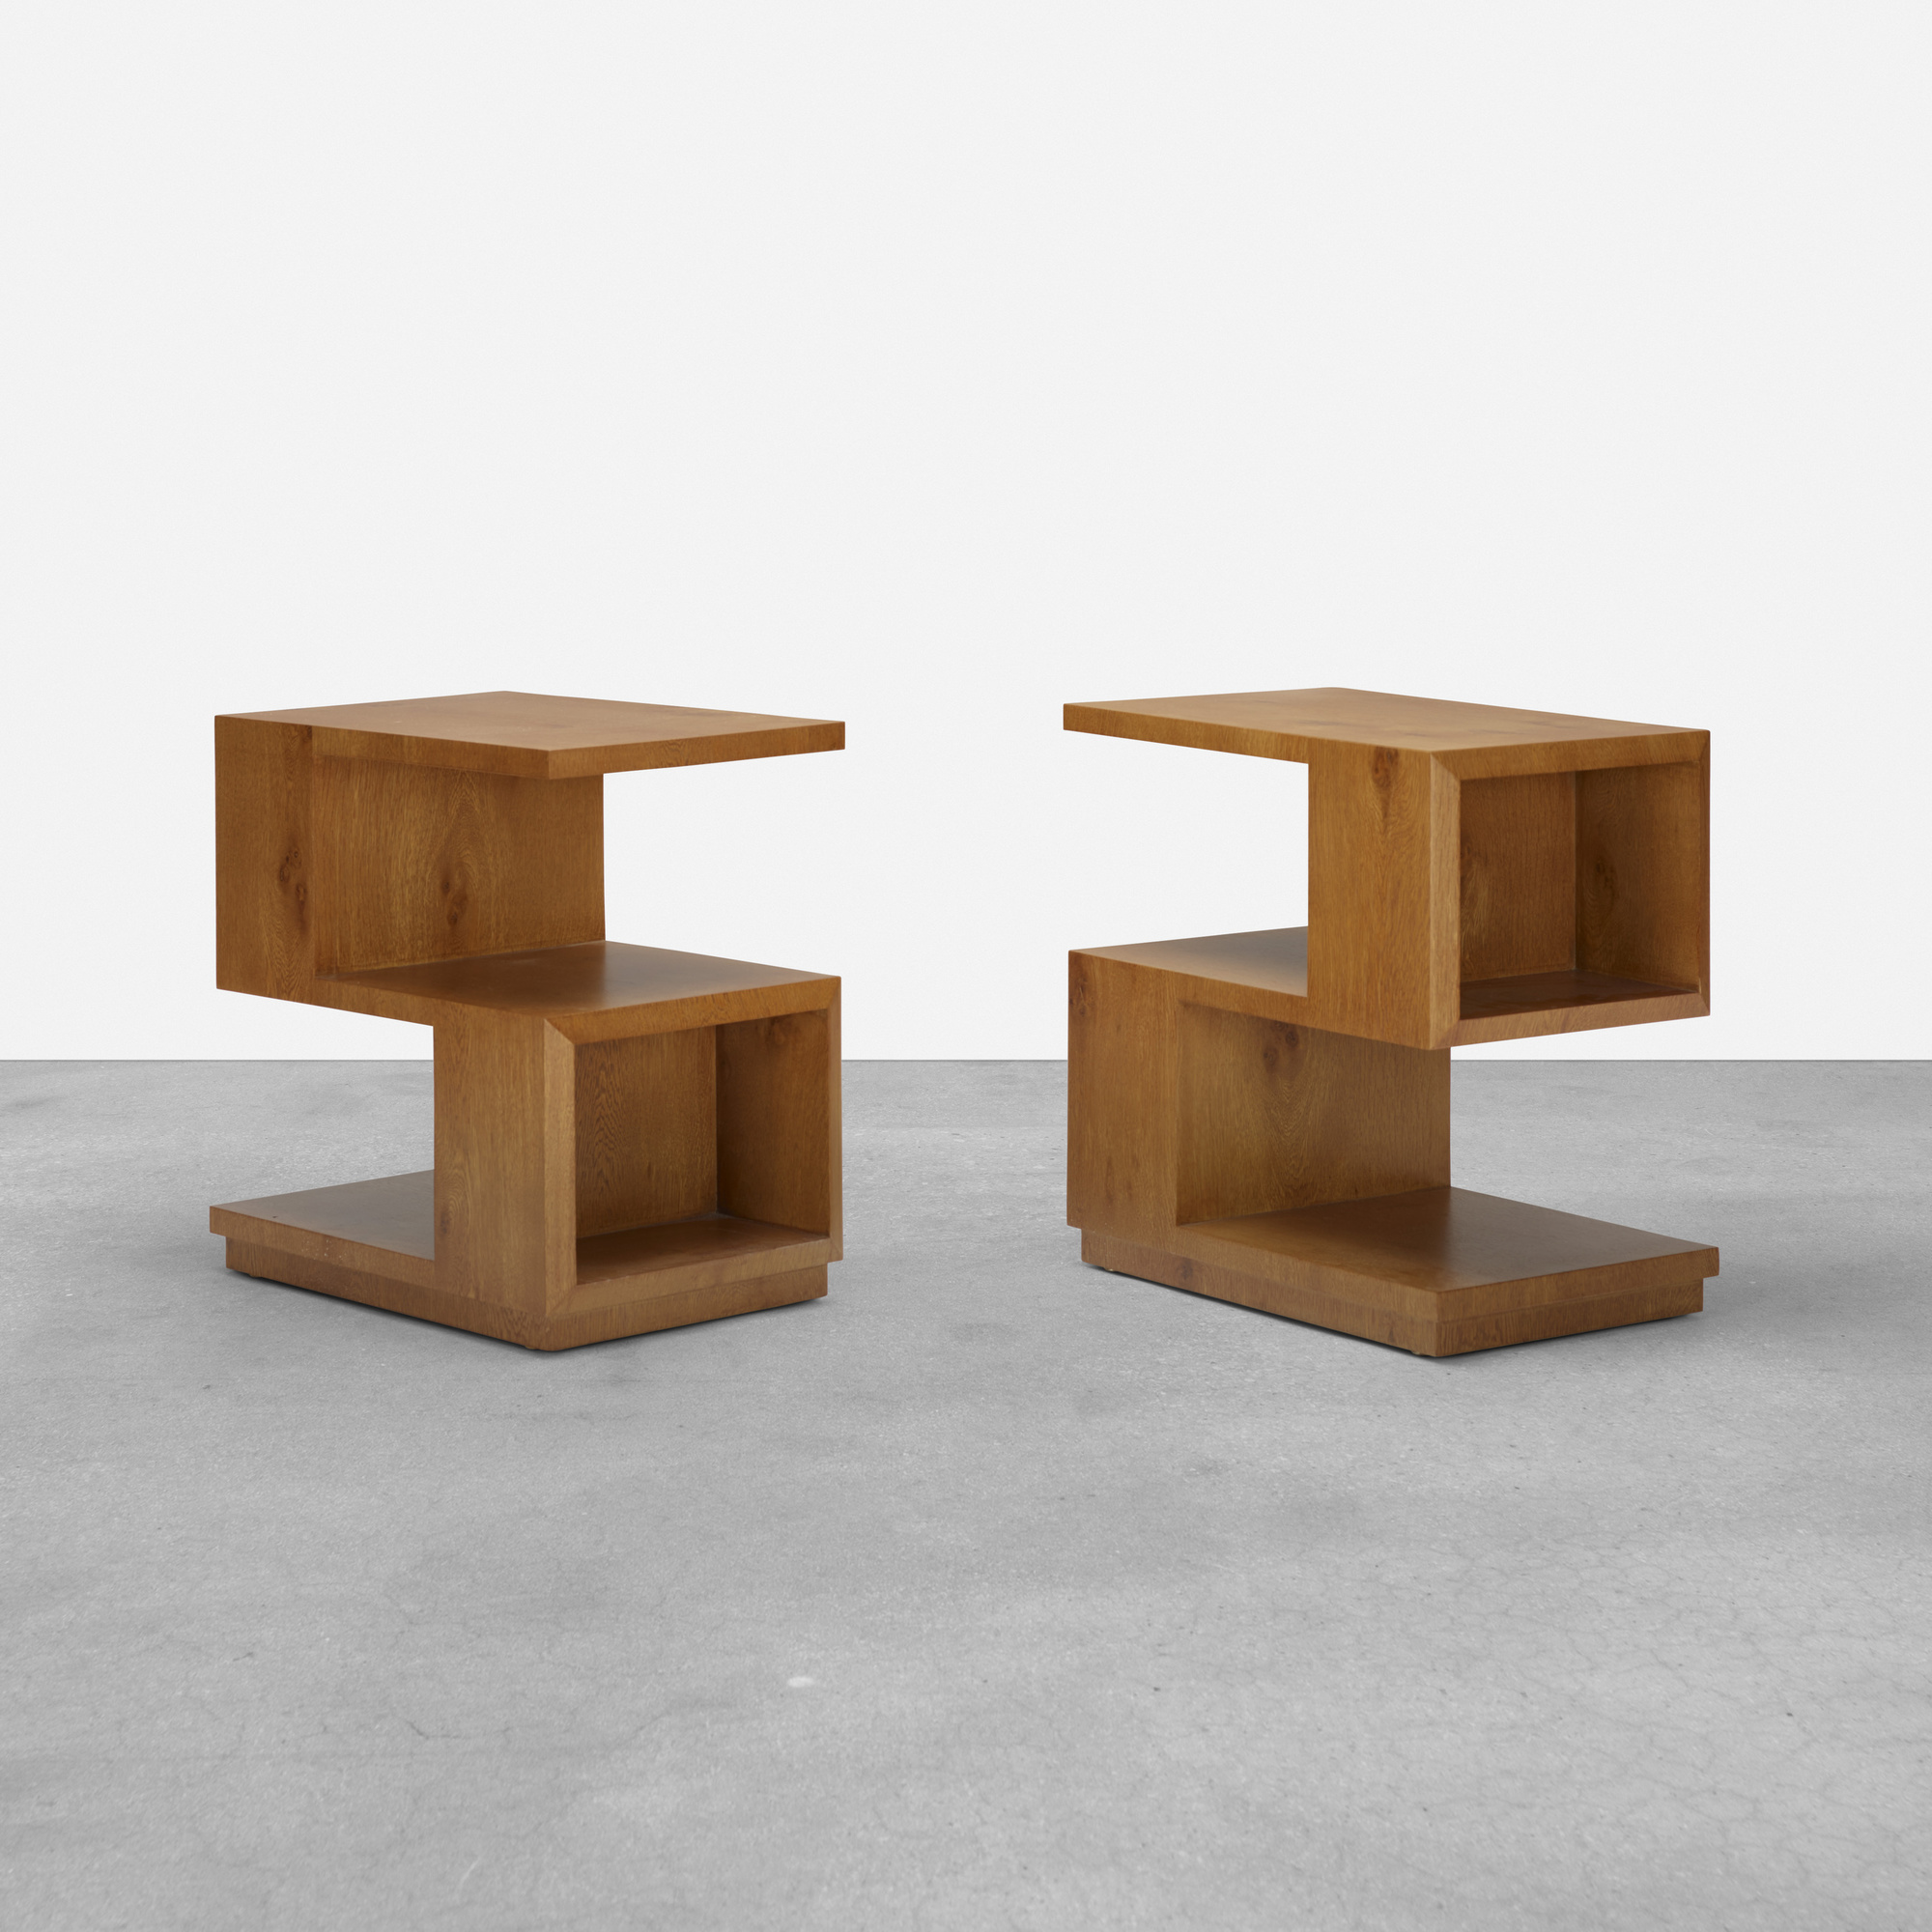 193: Samuel Marx / pair of occasional tables from the Morton D. May House (1 of 3)